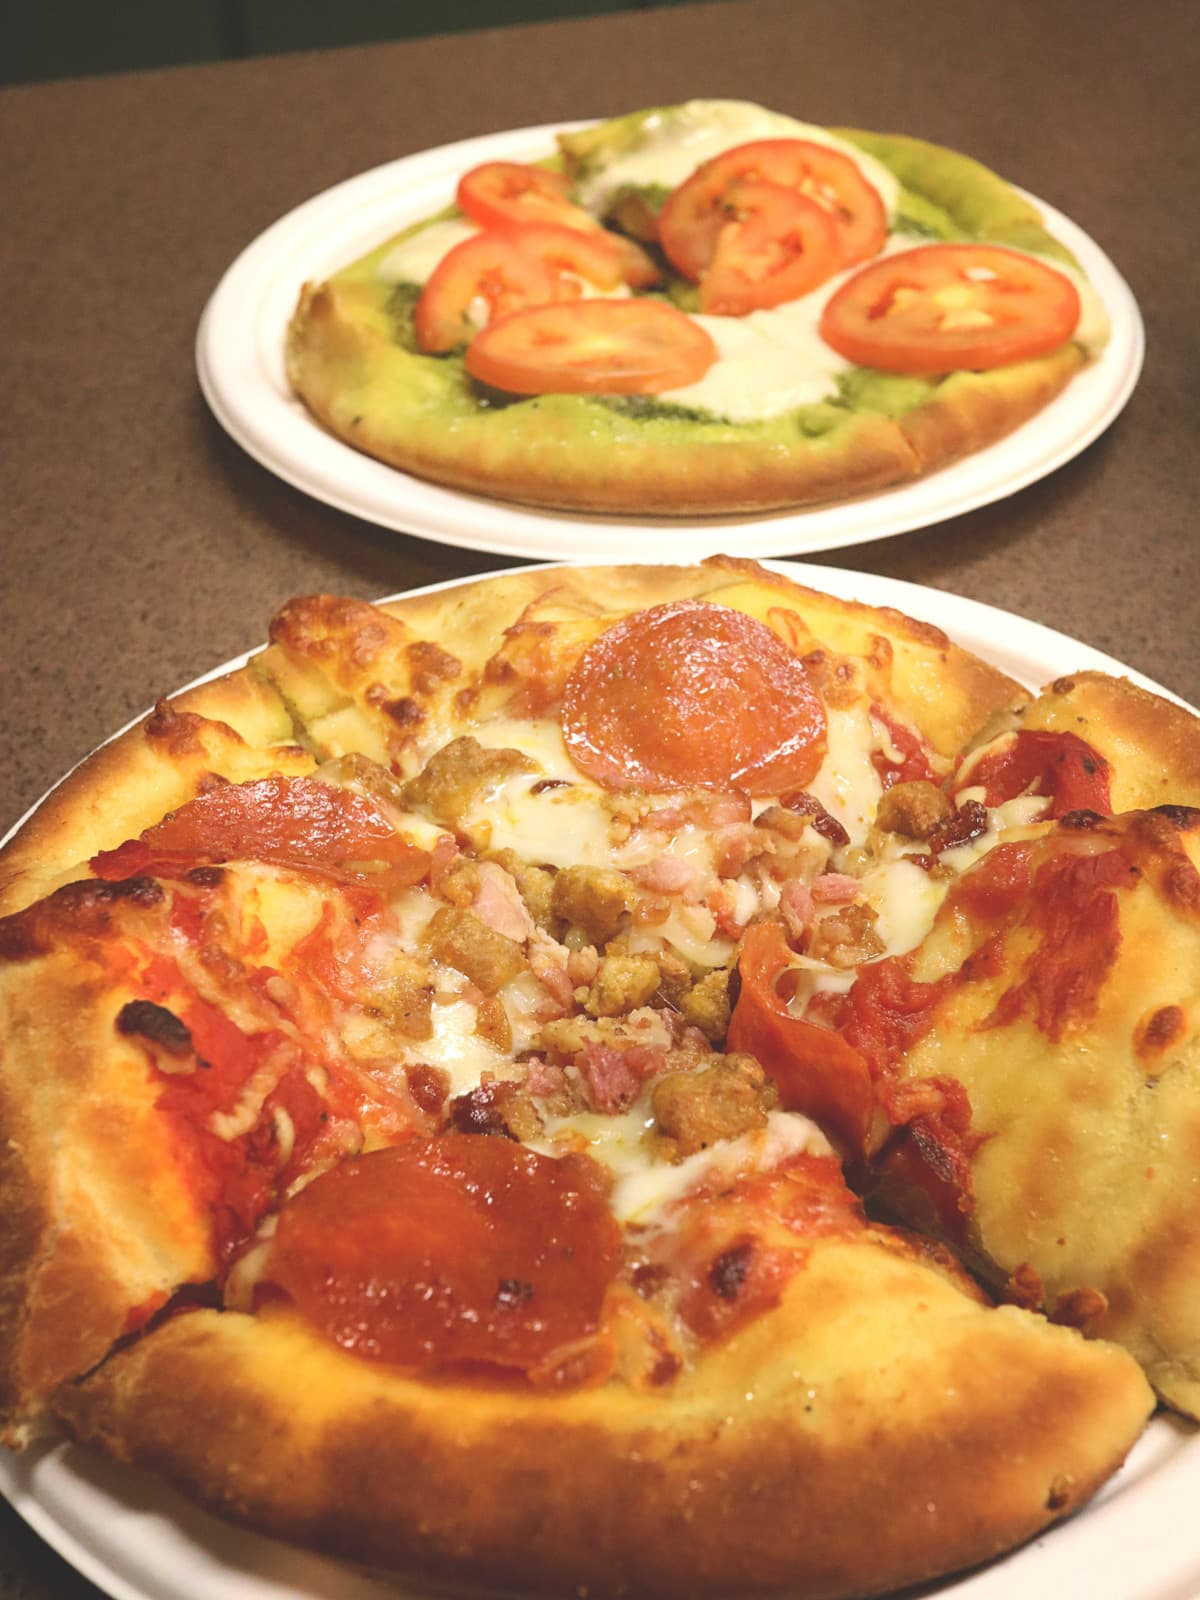 PIzza at Dollywood's Lumber Jack's Pizza